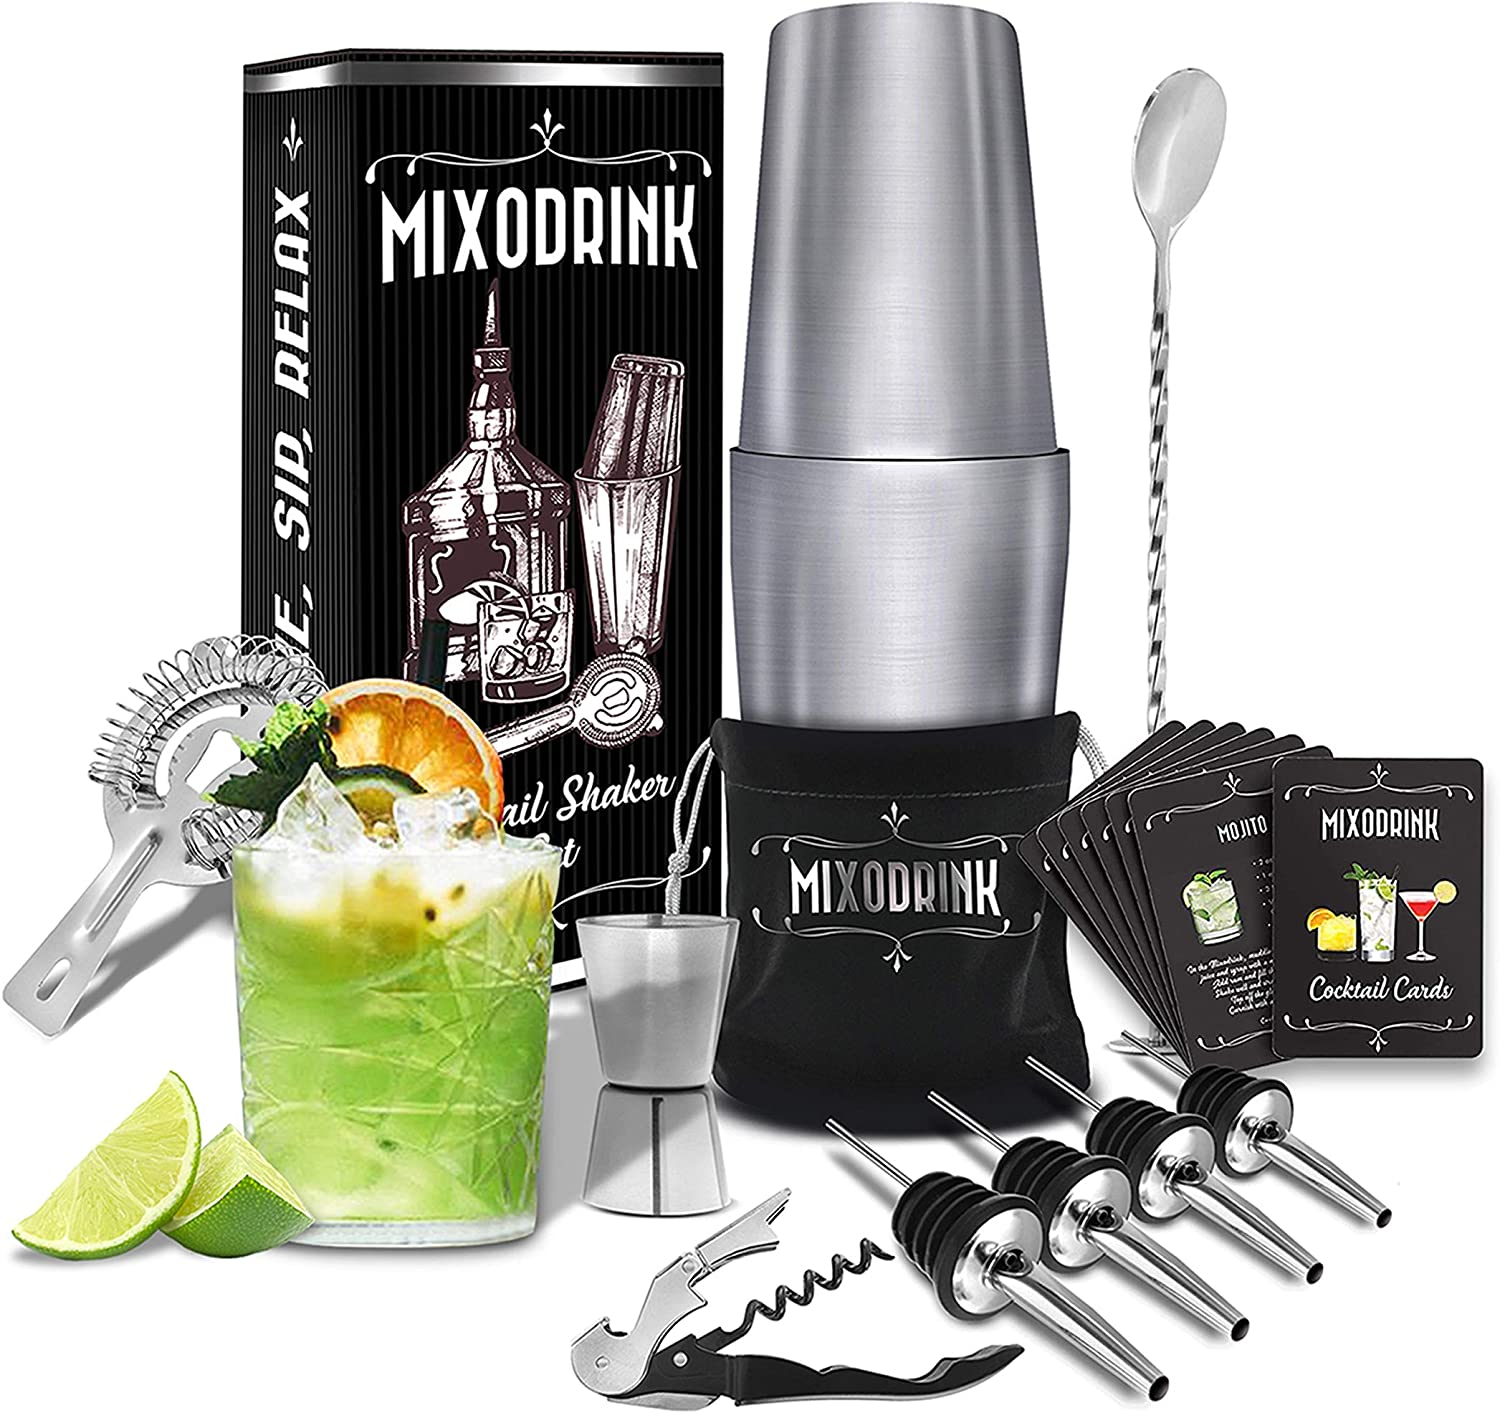 Cocktail Shaker Set 28oz Mixodrink - 12 Piece Stainless Steel w/ Drink Mixer Book   Boston Shaker Bar Kit   Mixology Bartender Kit   For Martini, Margarita Mixes, Professional Bar Accessories Included